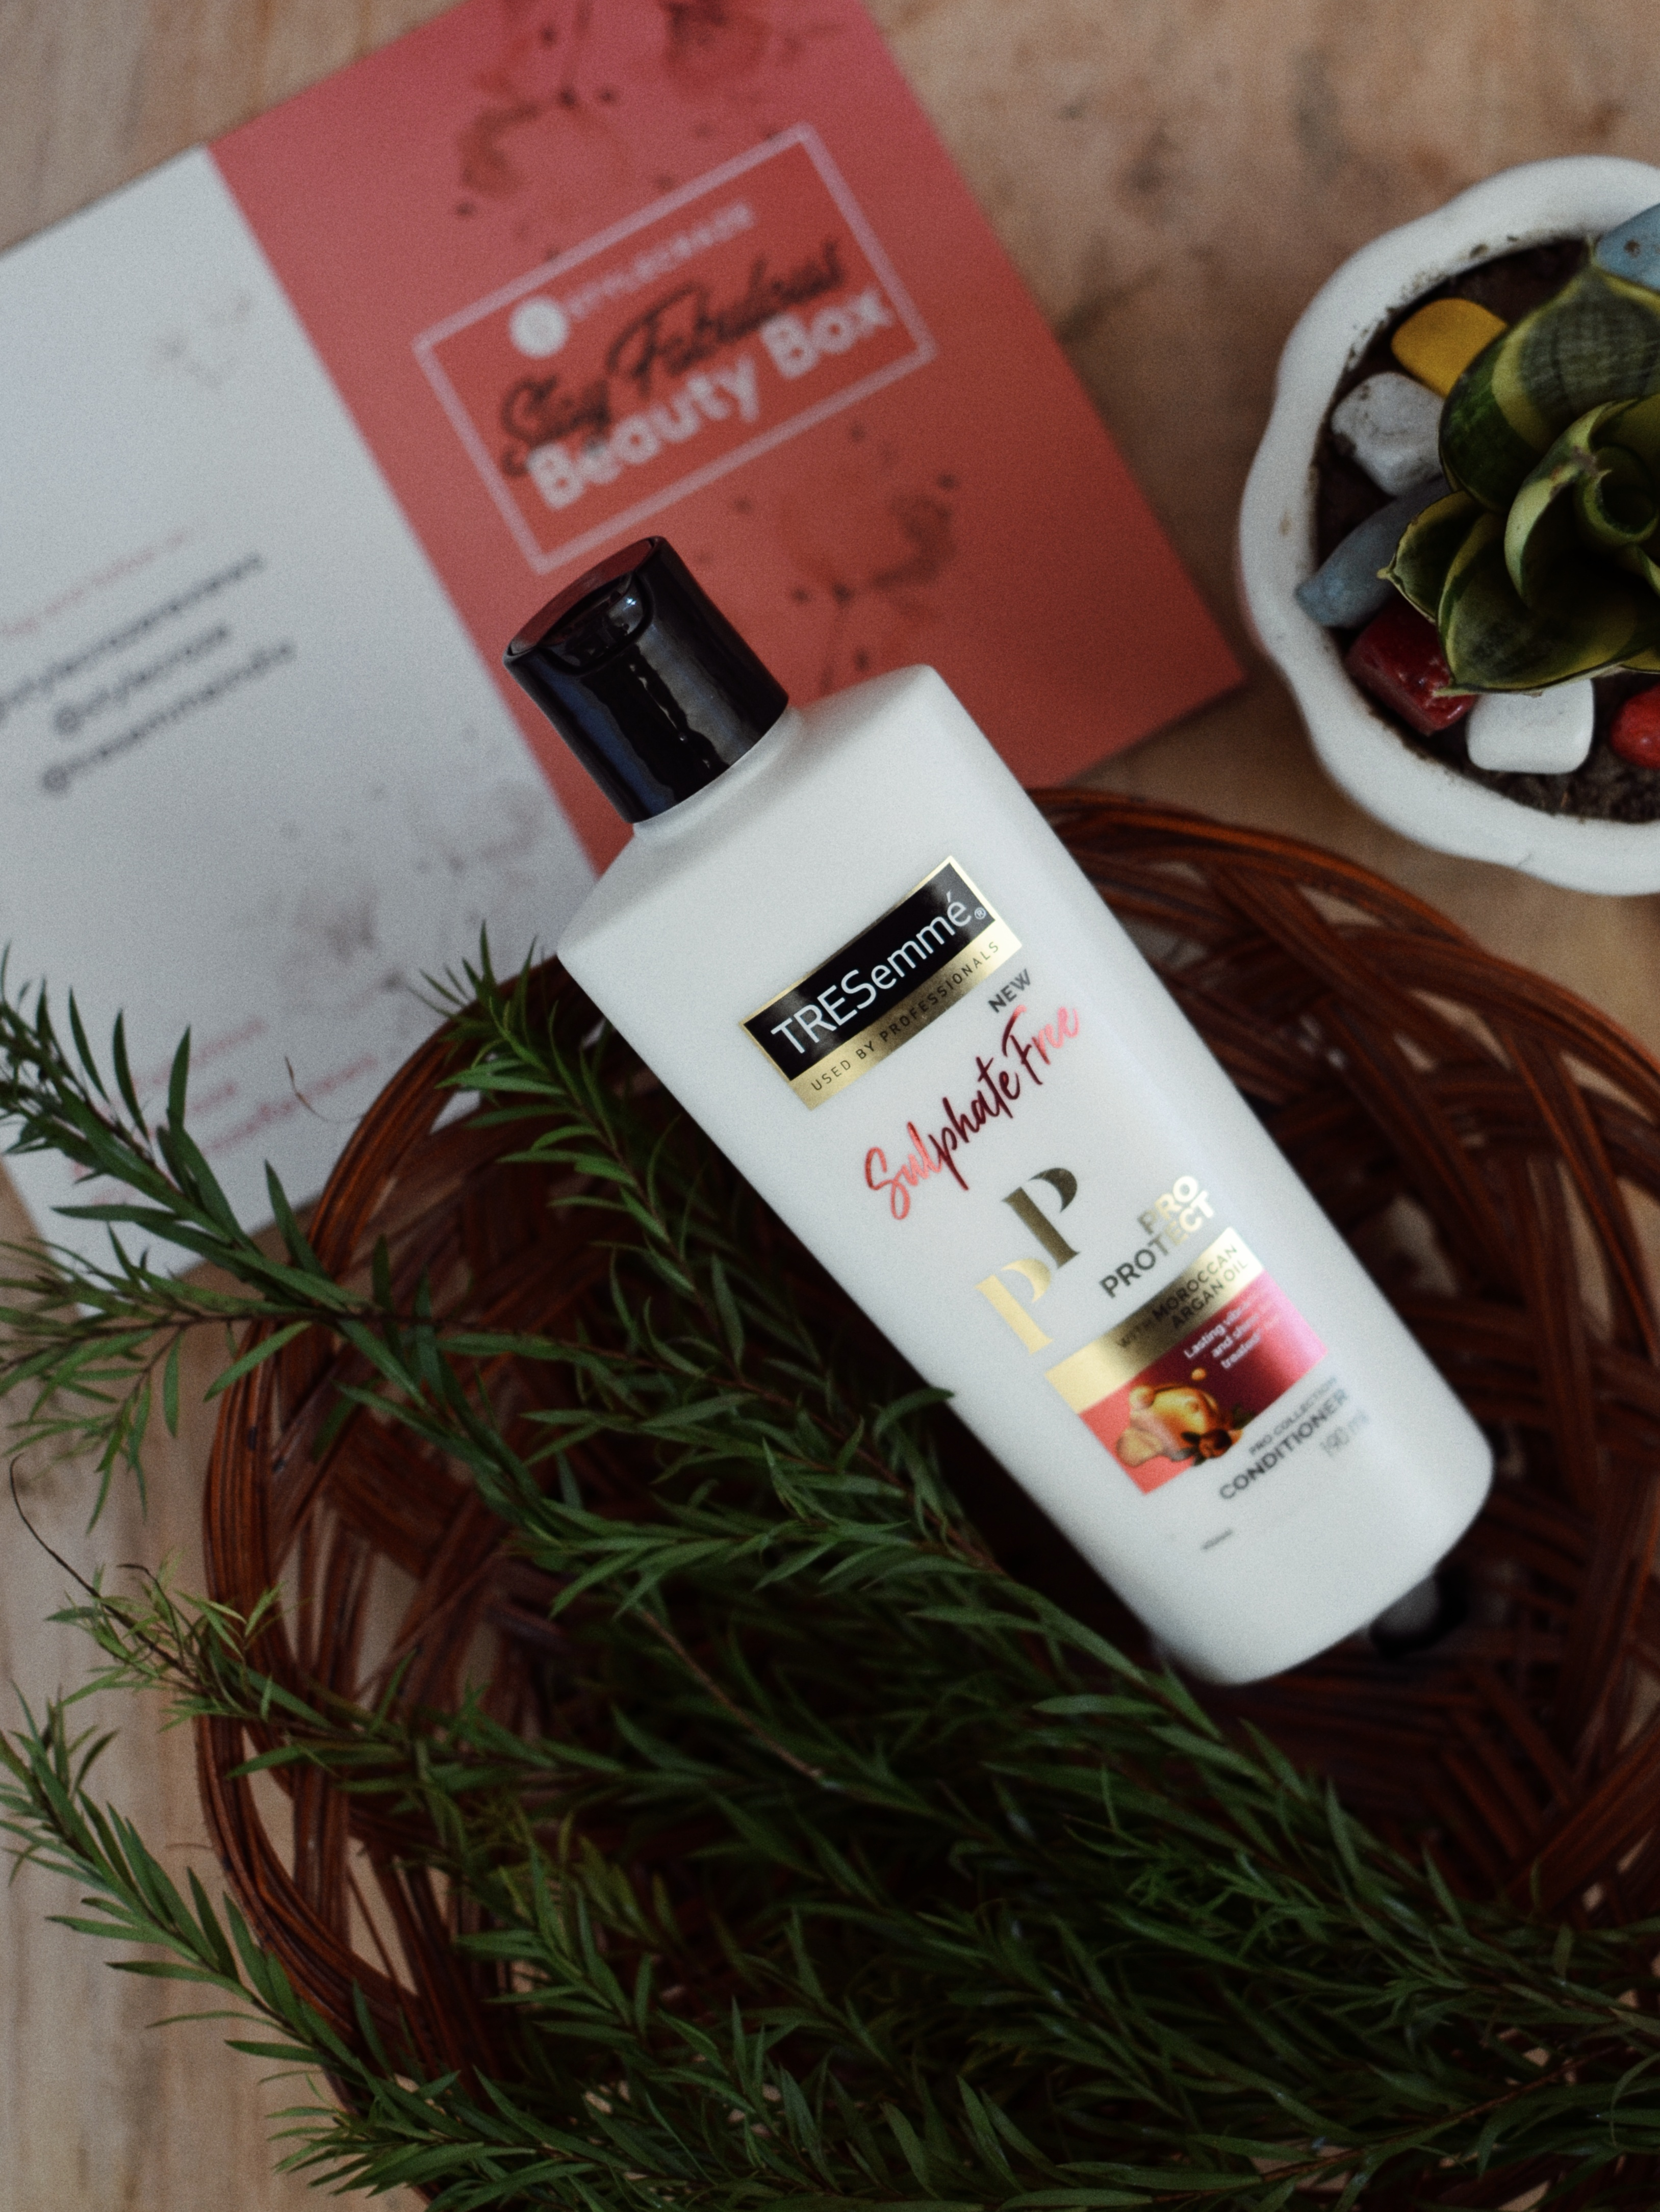 Tresemme Pro Protect Sulphate Free Conditioner -Current favorite-By theatre_astic